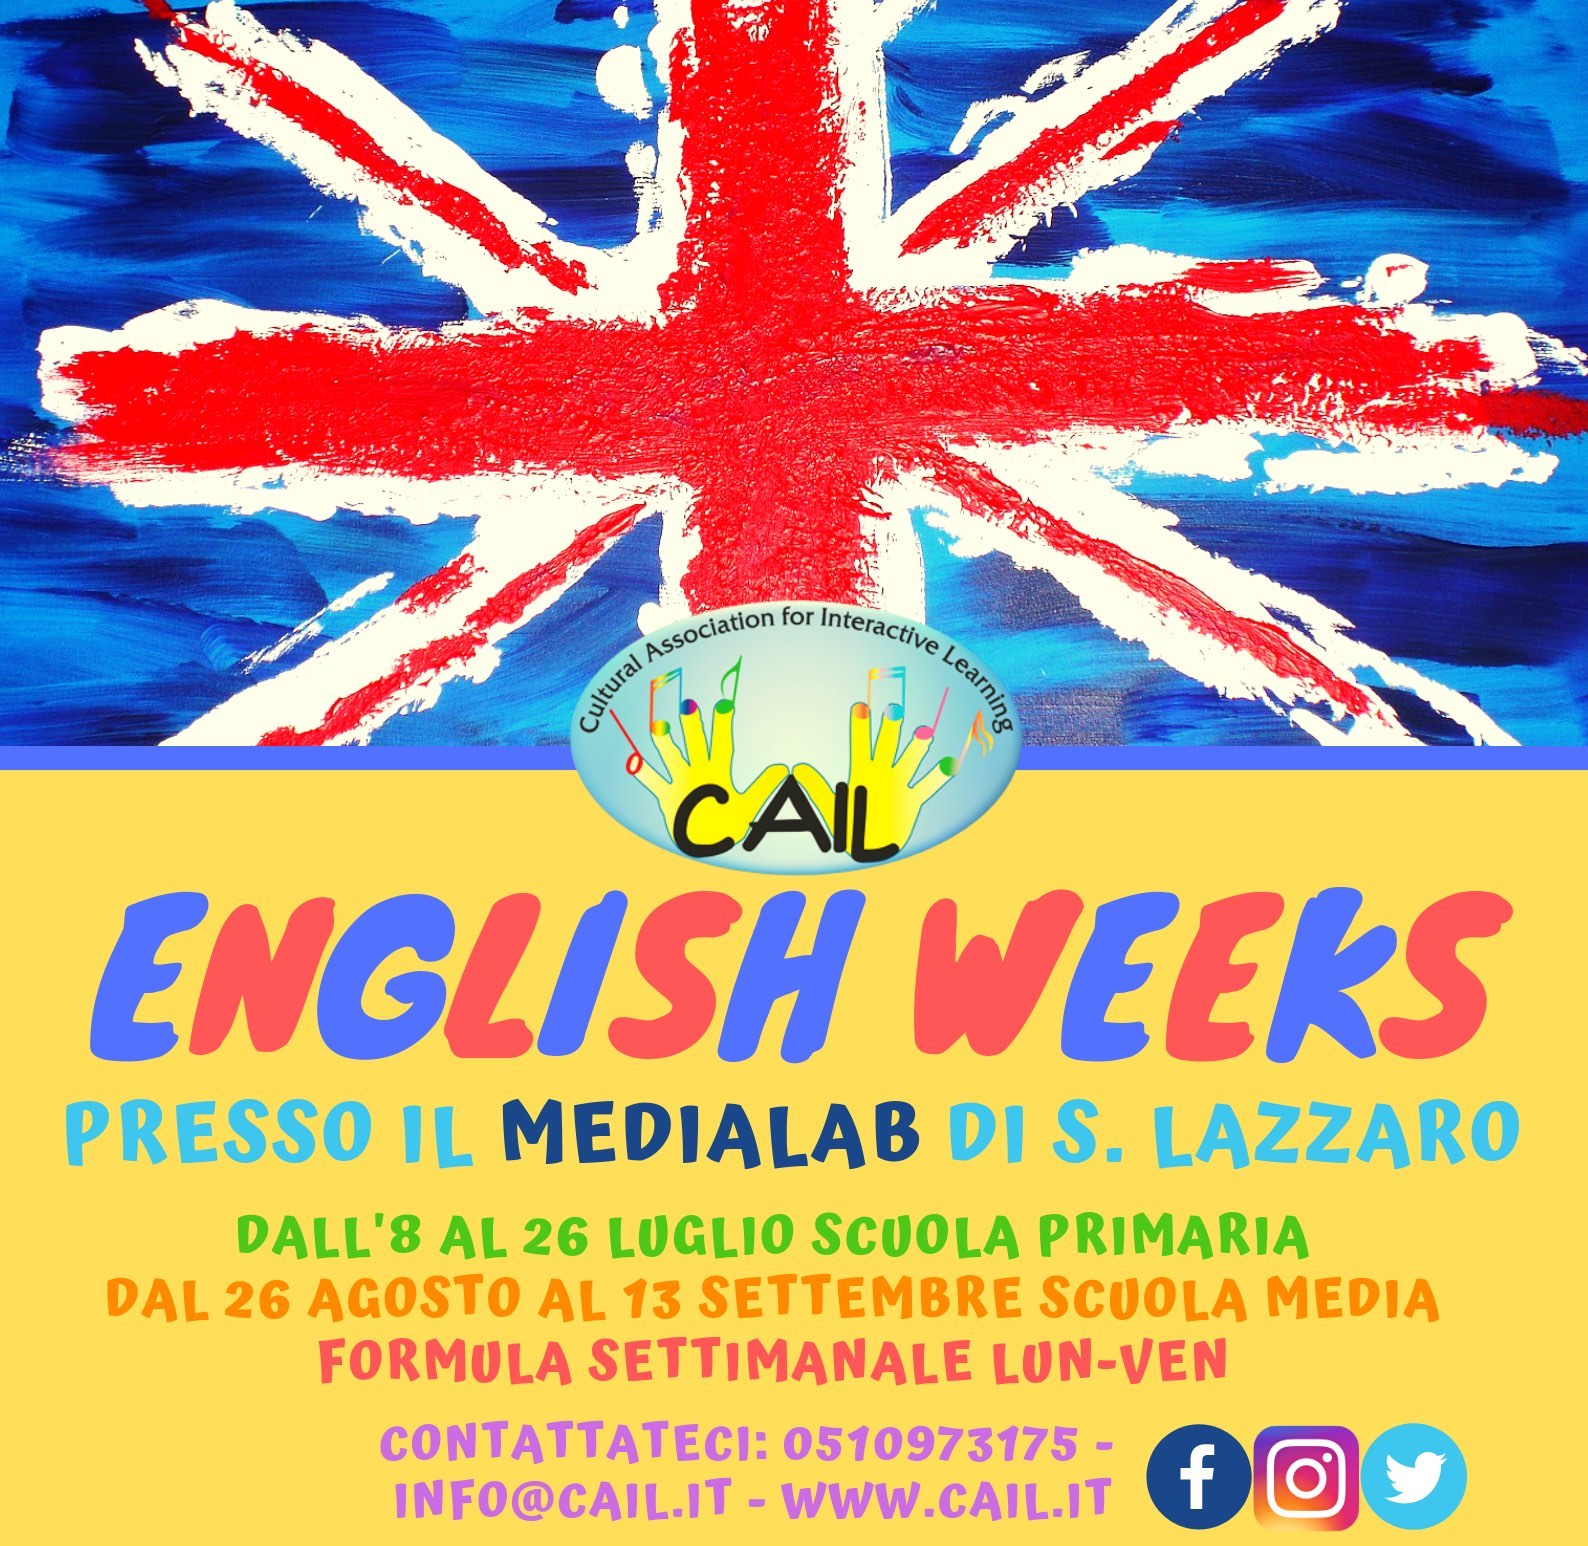 English weeks